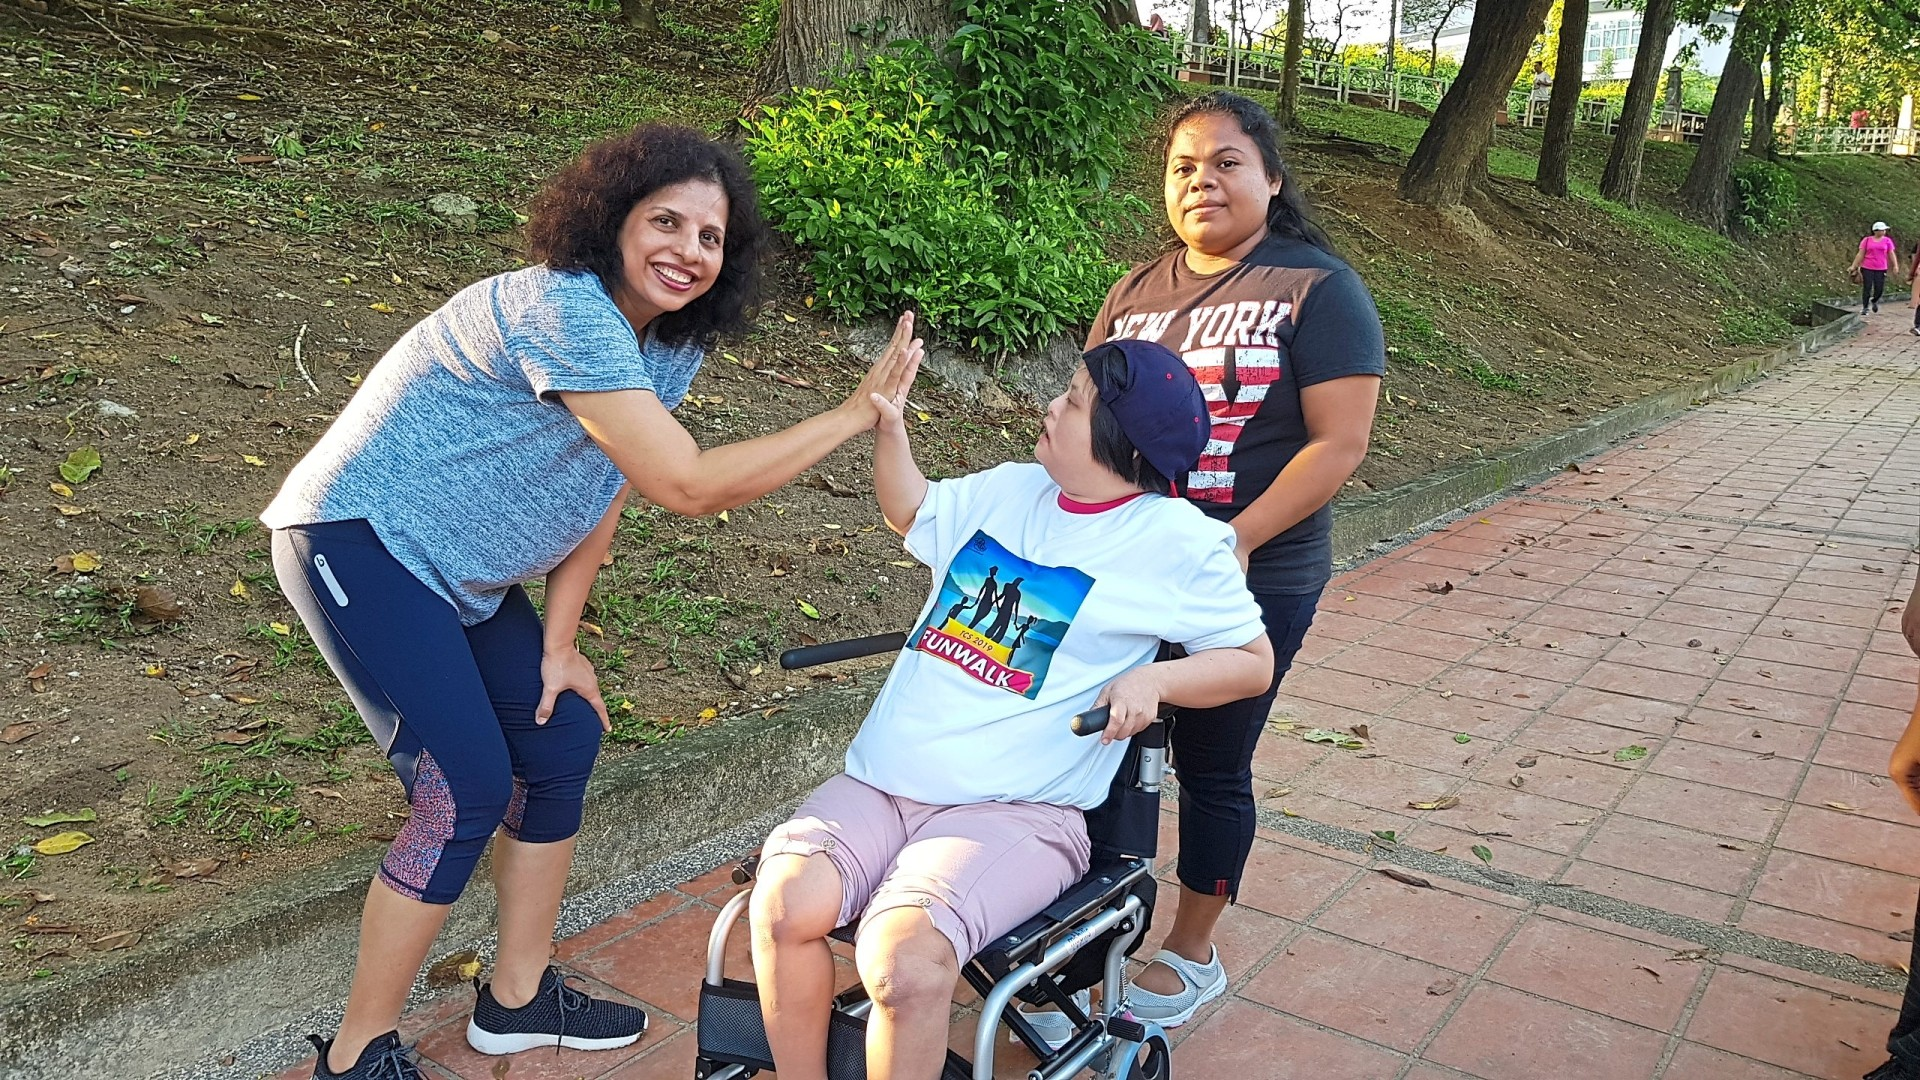 Dr Pushpa gives Wong Yong Xin, 29, a high five for taking part in the event. Wong is one of 25 differently-abled students who attend classes at Touch Community Seremban.